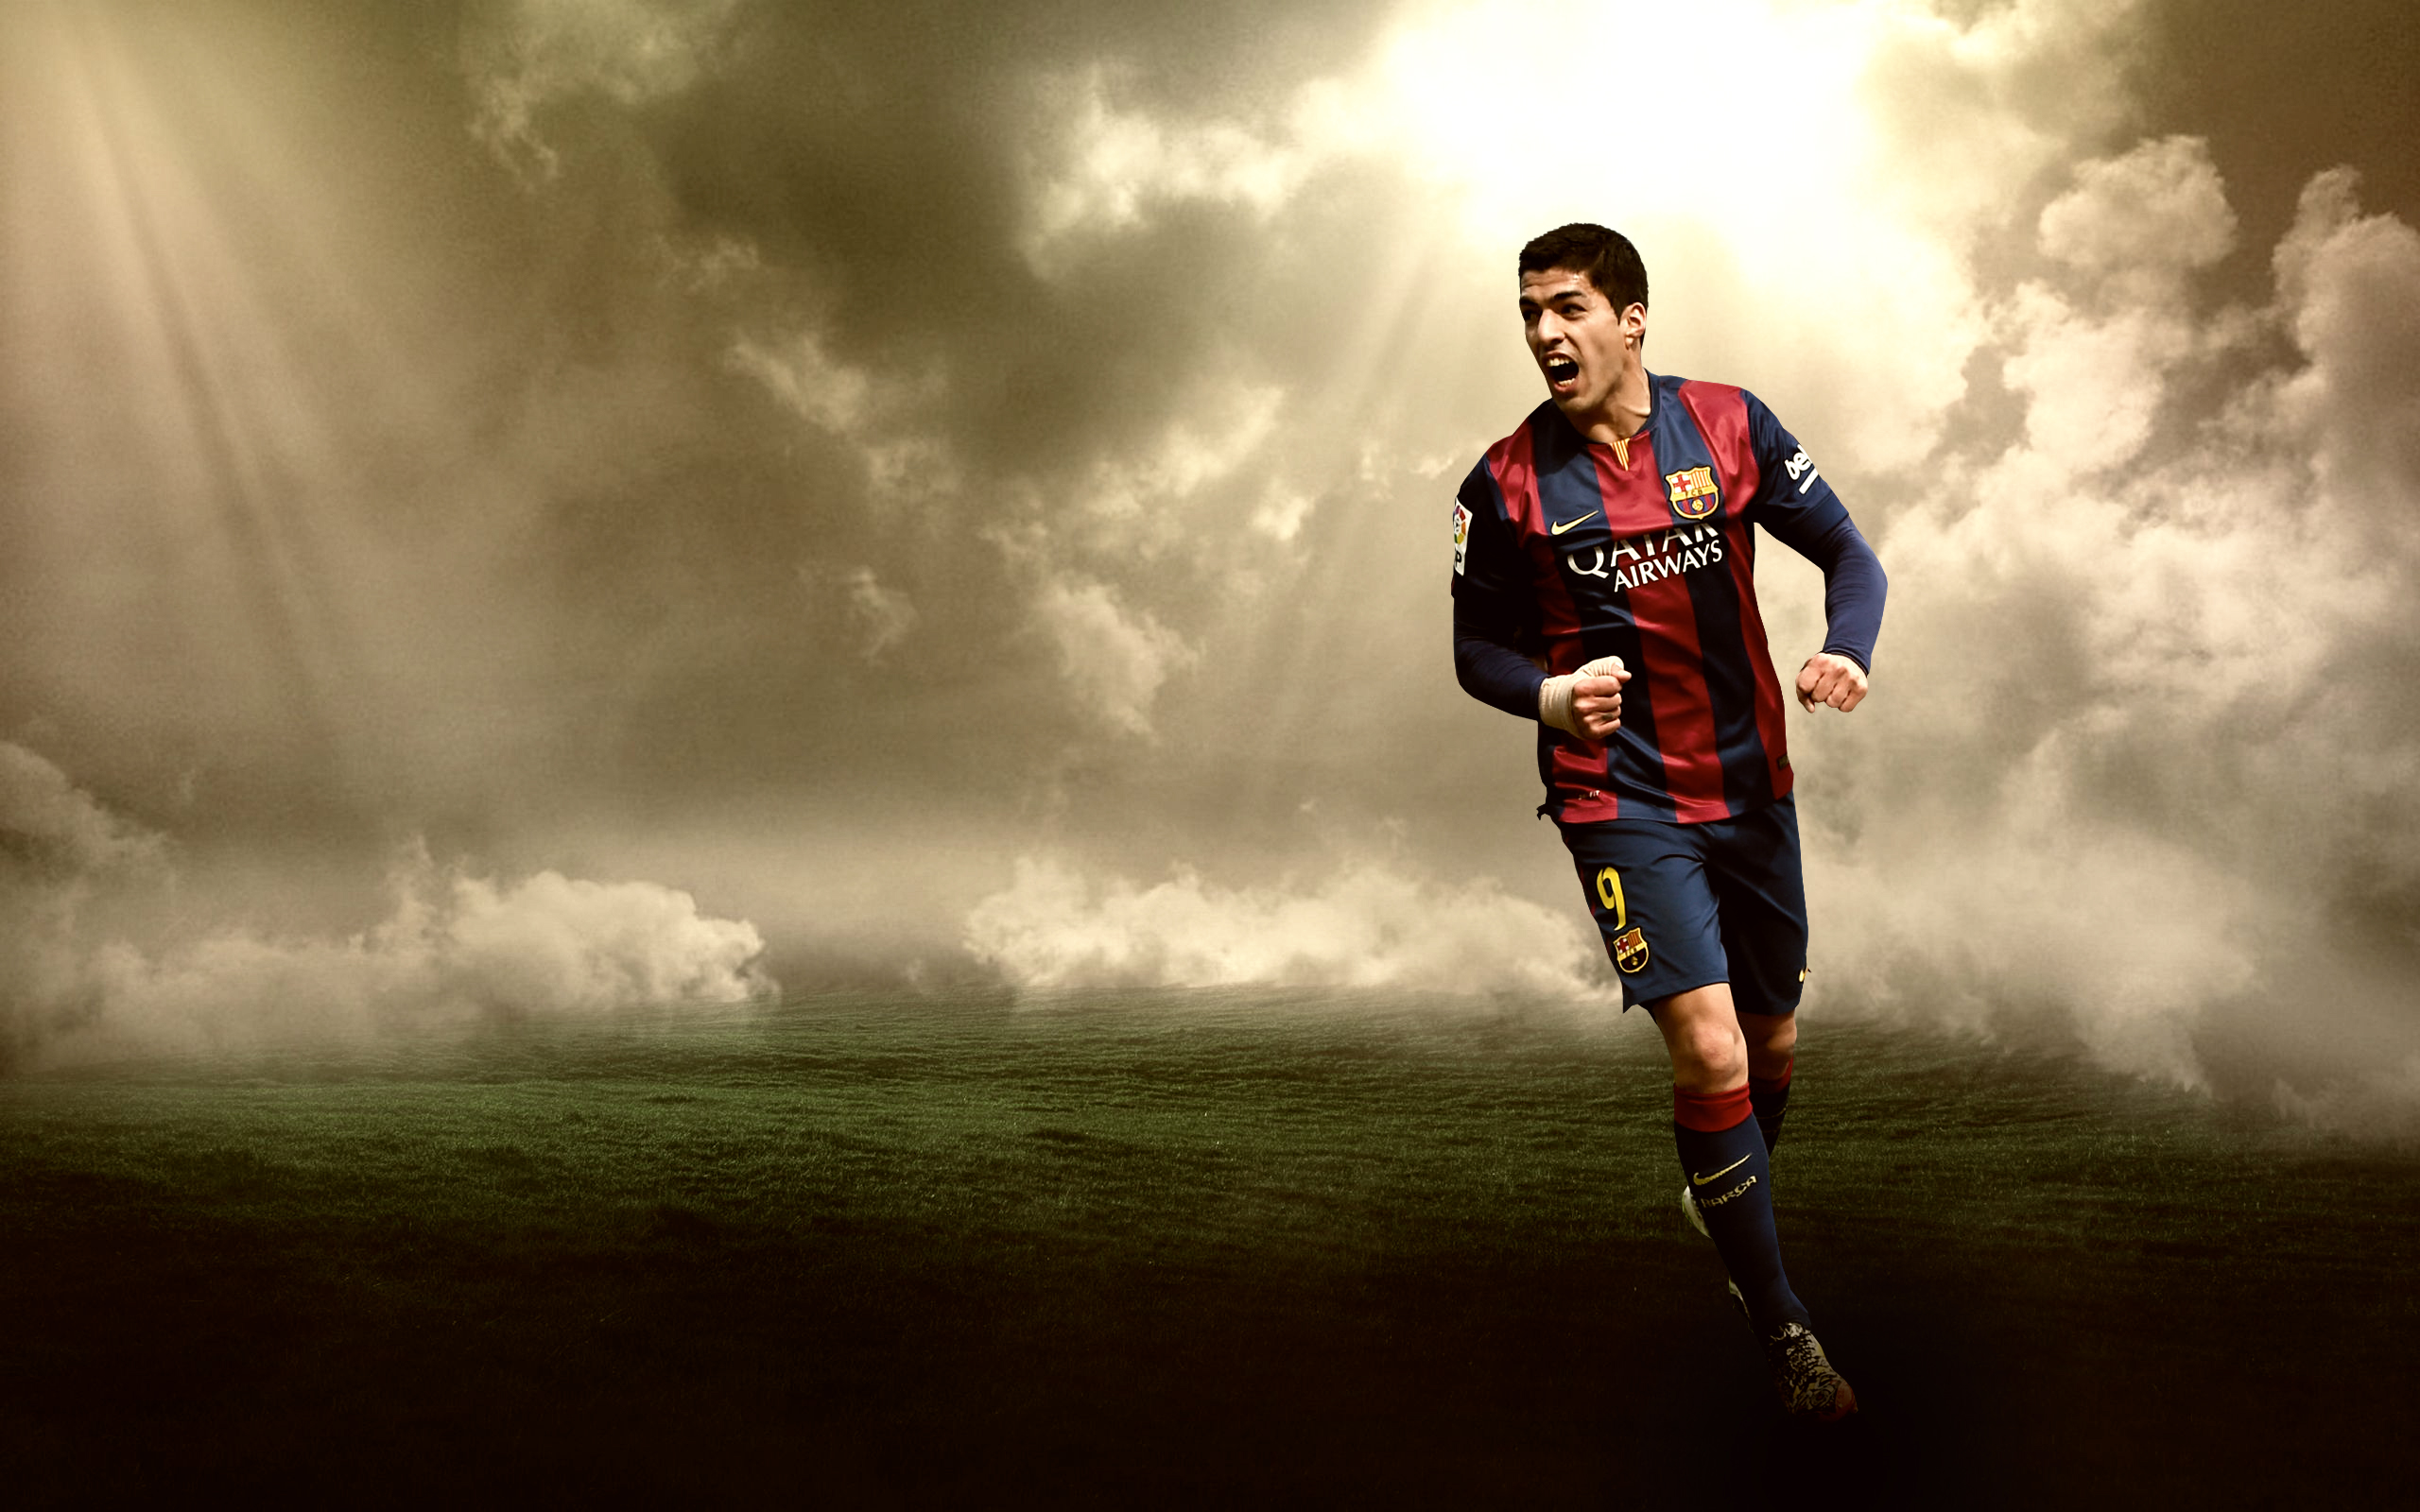 luis suarez wallpaper by rakagfx watch customization wallpaper people 2560x1600